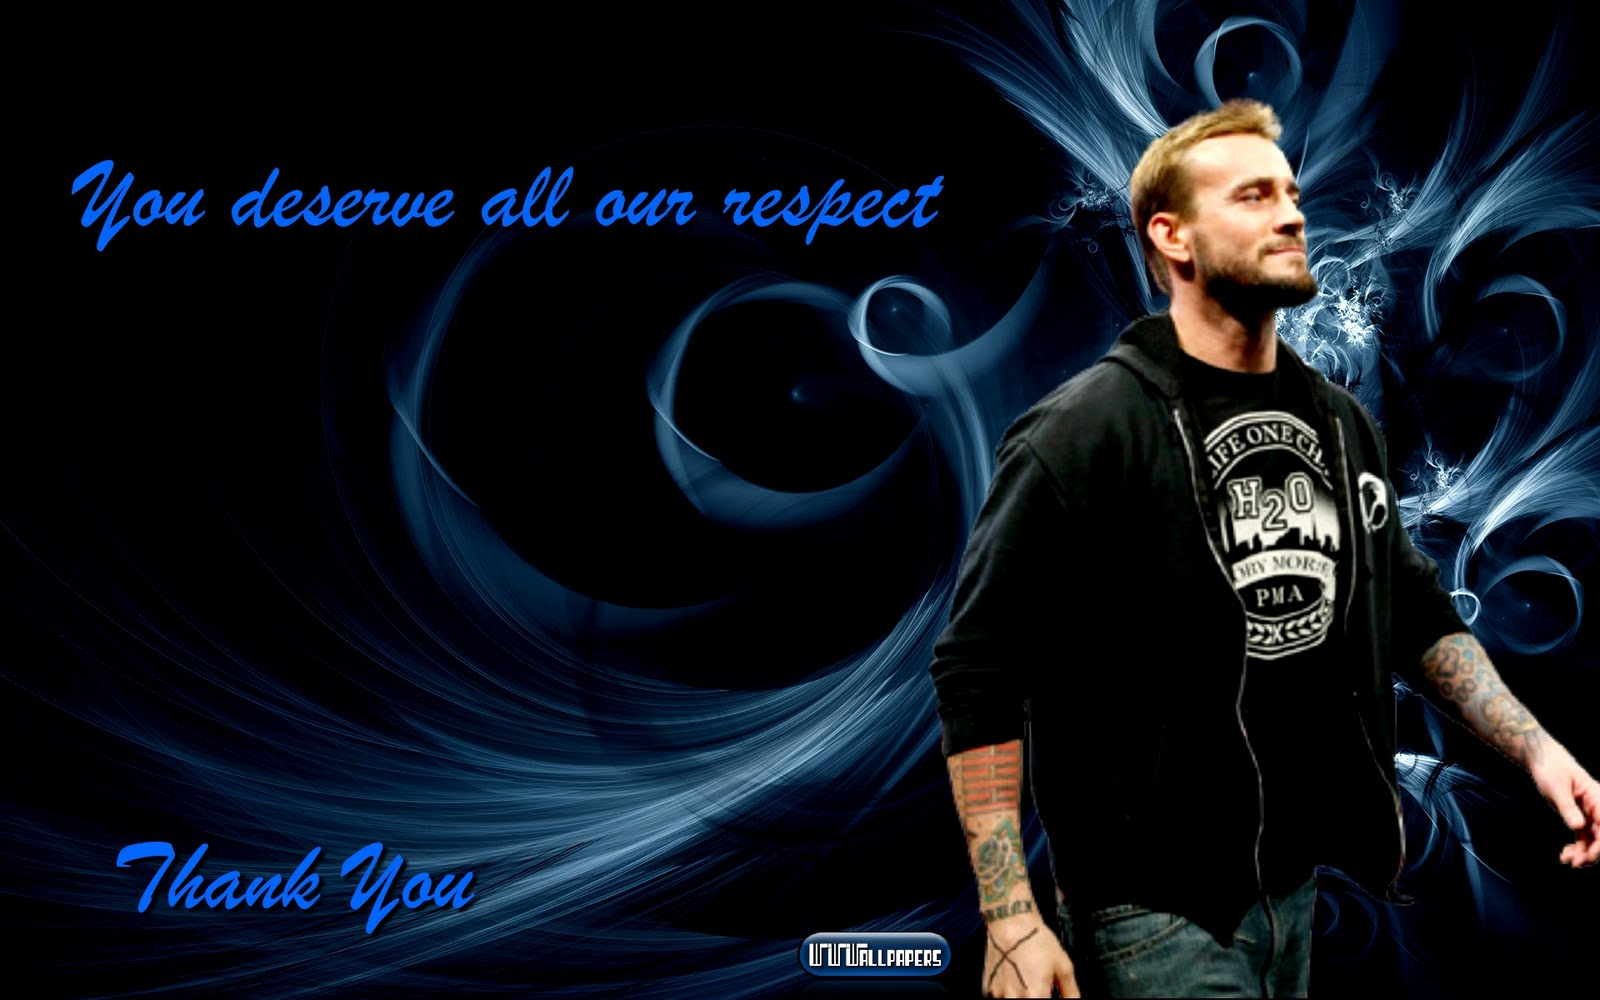 Wallpaper Of Cm Punk 2012 | Affordable Business